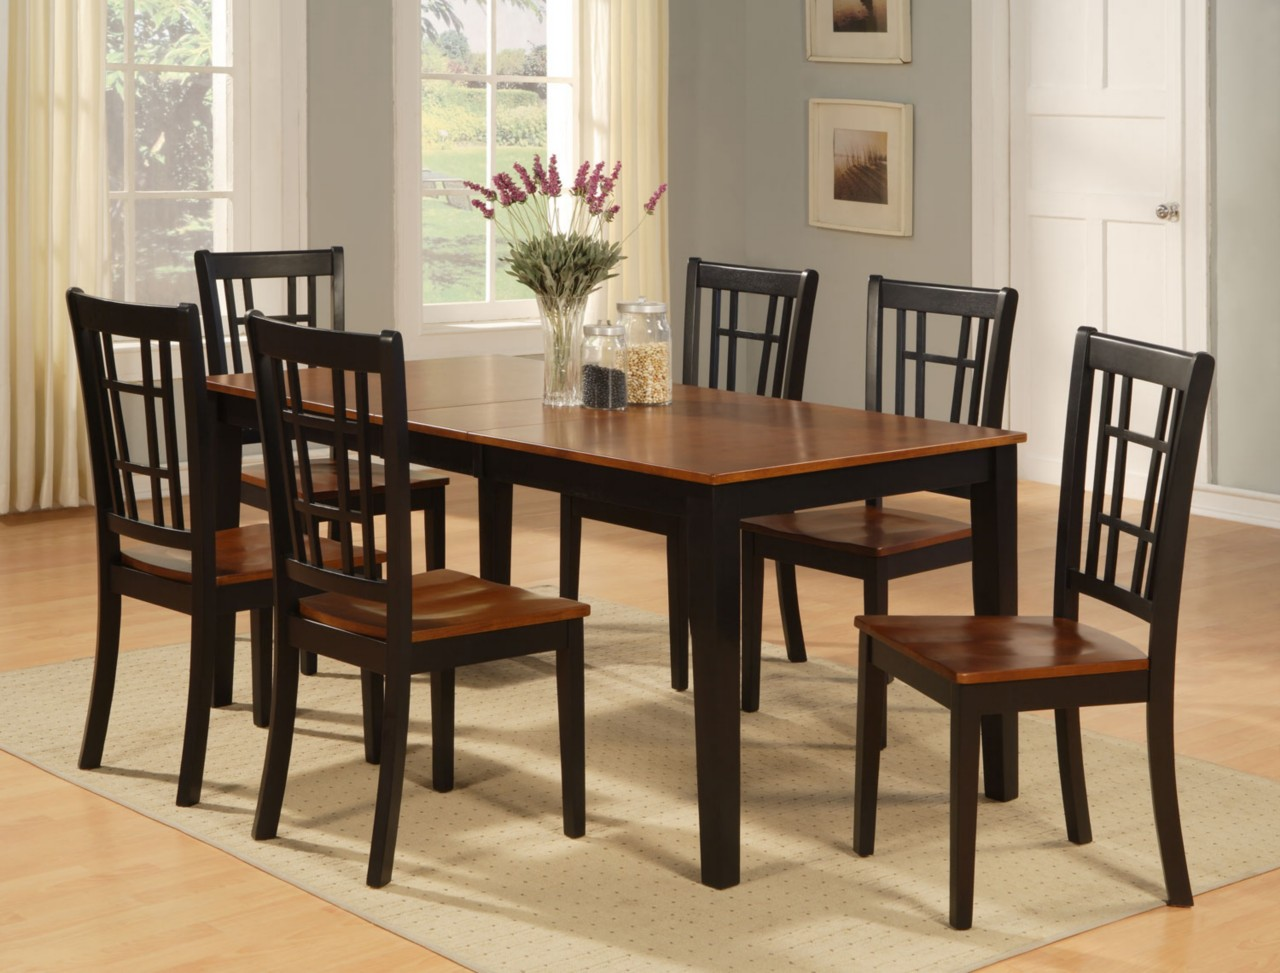 Dinette kitchen dining room set 7pc table and 6 chairs ebay for Dining table set